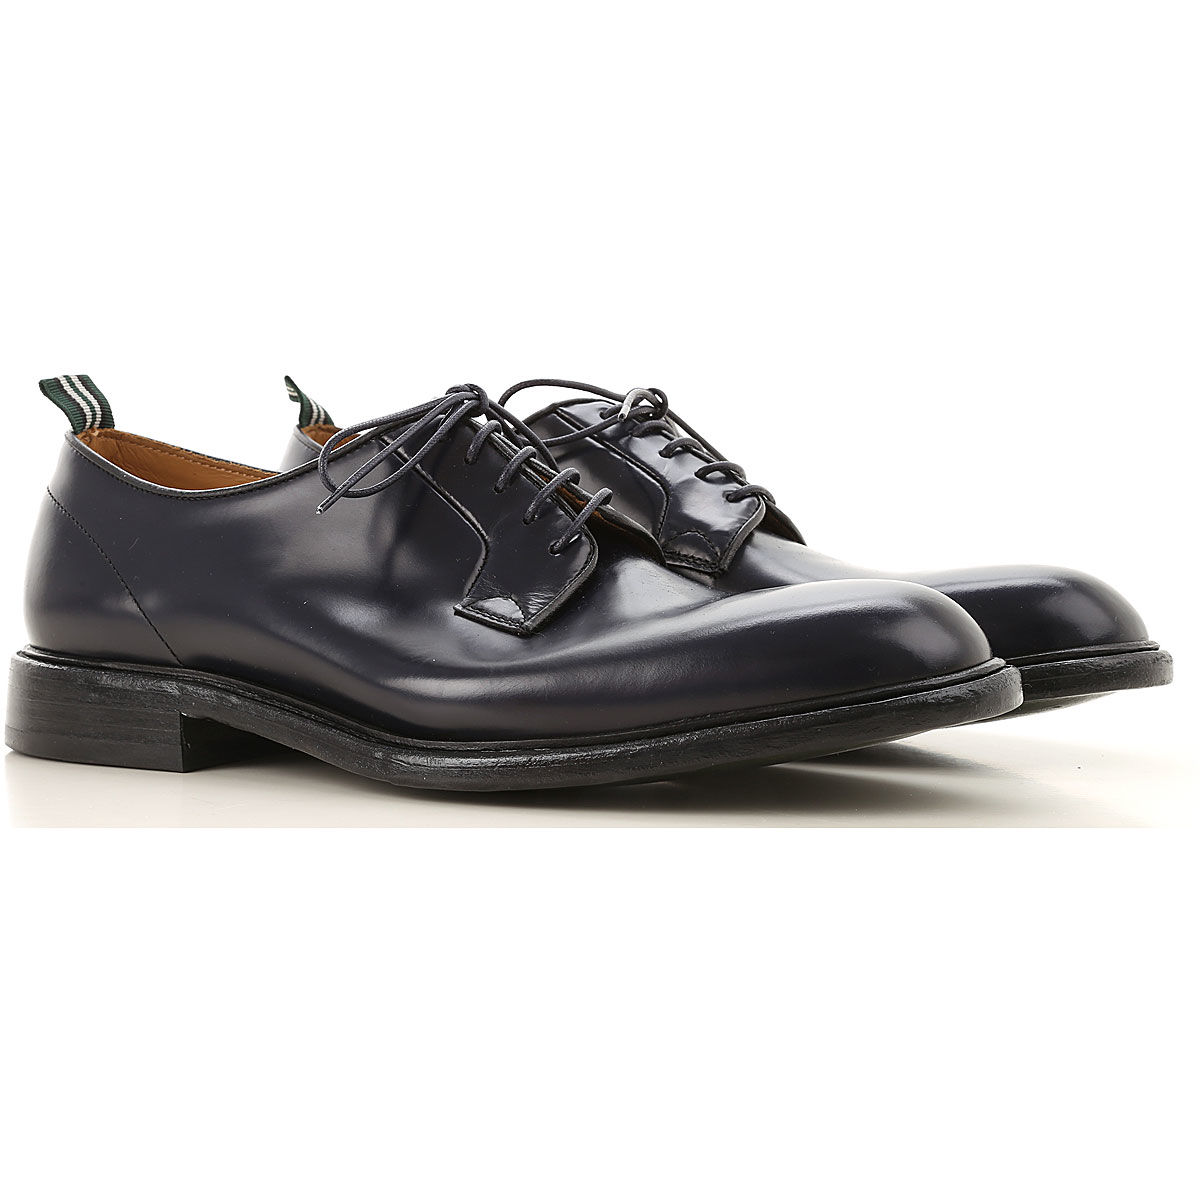 Green George Lace Up Shoes for Men Oxfords 10 9 Derbies and Brogues On Sale UK - GOOFASH